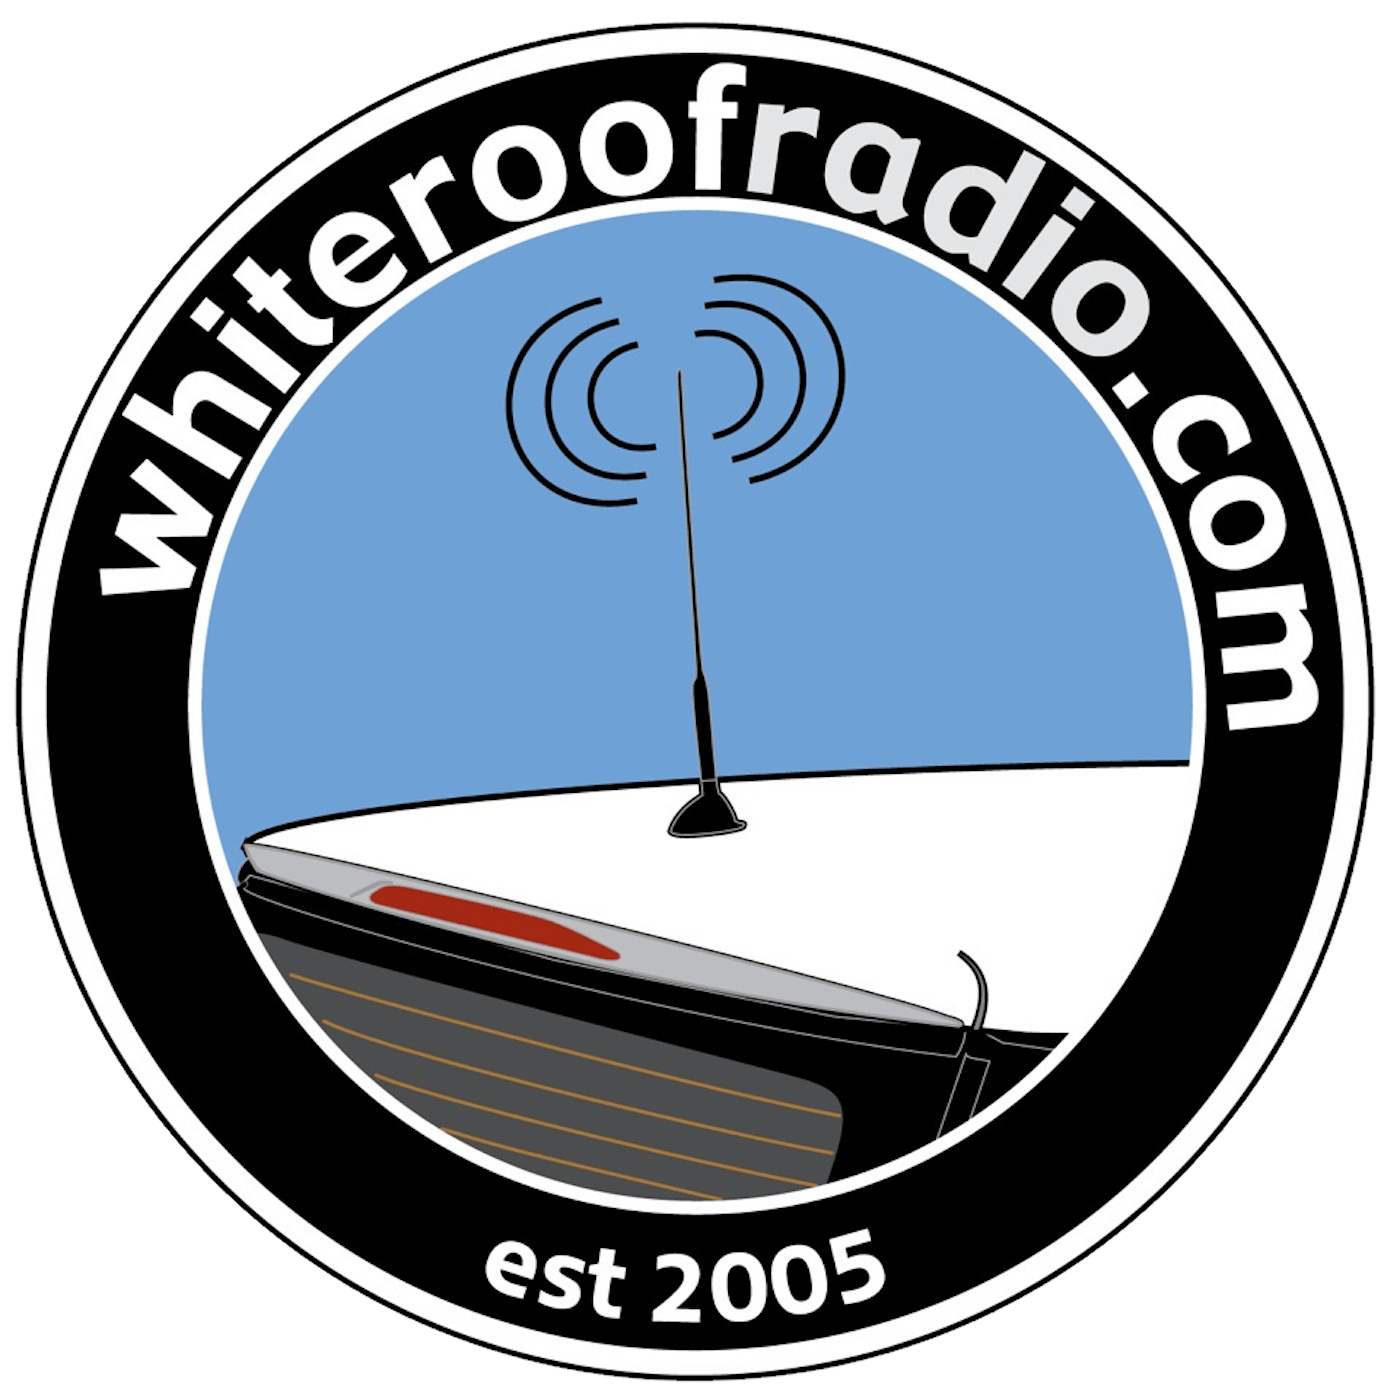 whiteroofradio logo